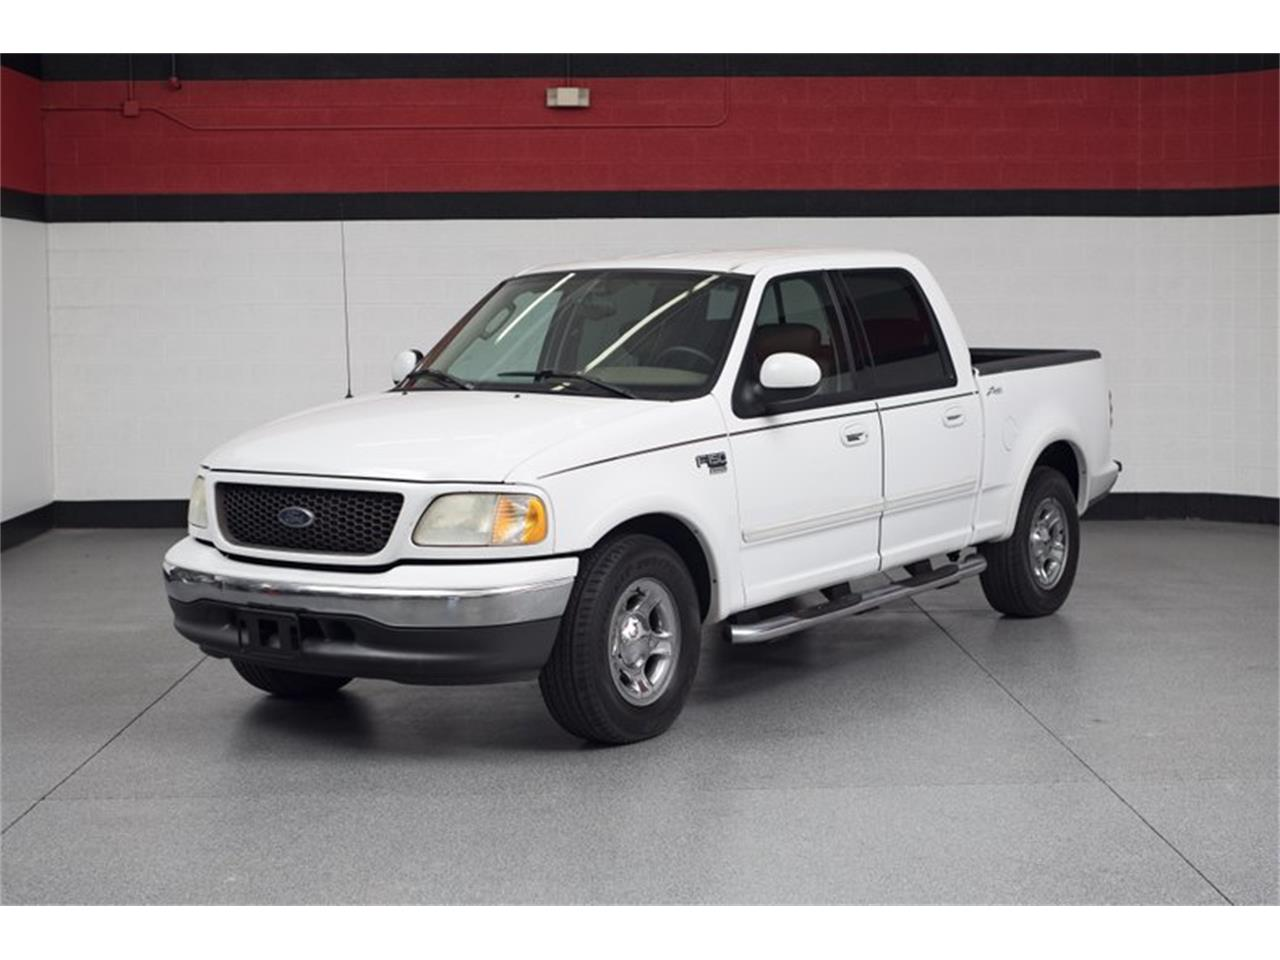 2003 Ford F150 For Sale >> For Sale 2003 Ford F150 In Gilbert Arizona